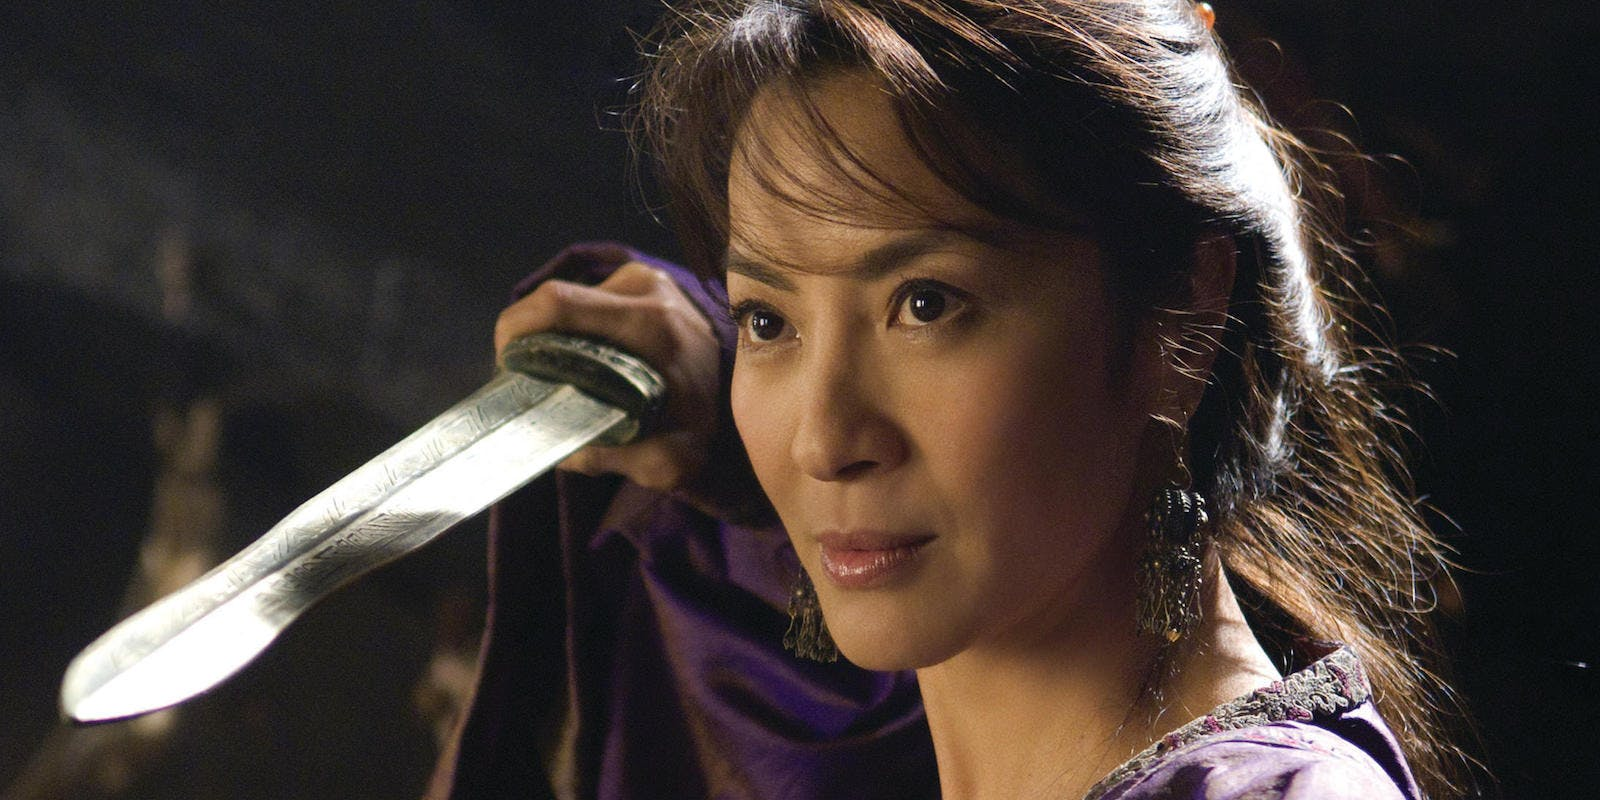 http://fight-films.info/wp-content/uploads/2018/05/Michelle-Yeoh2.jpg